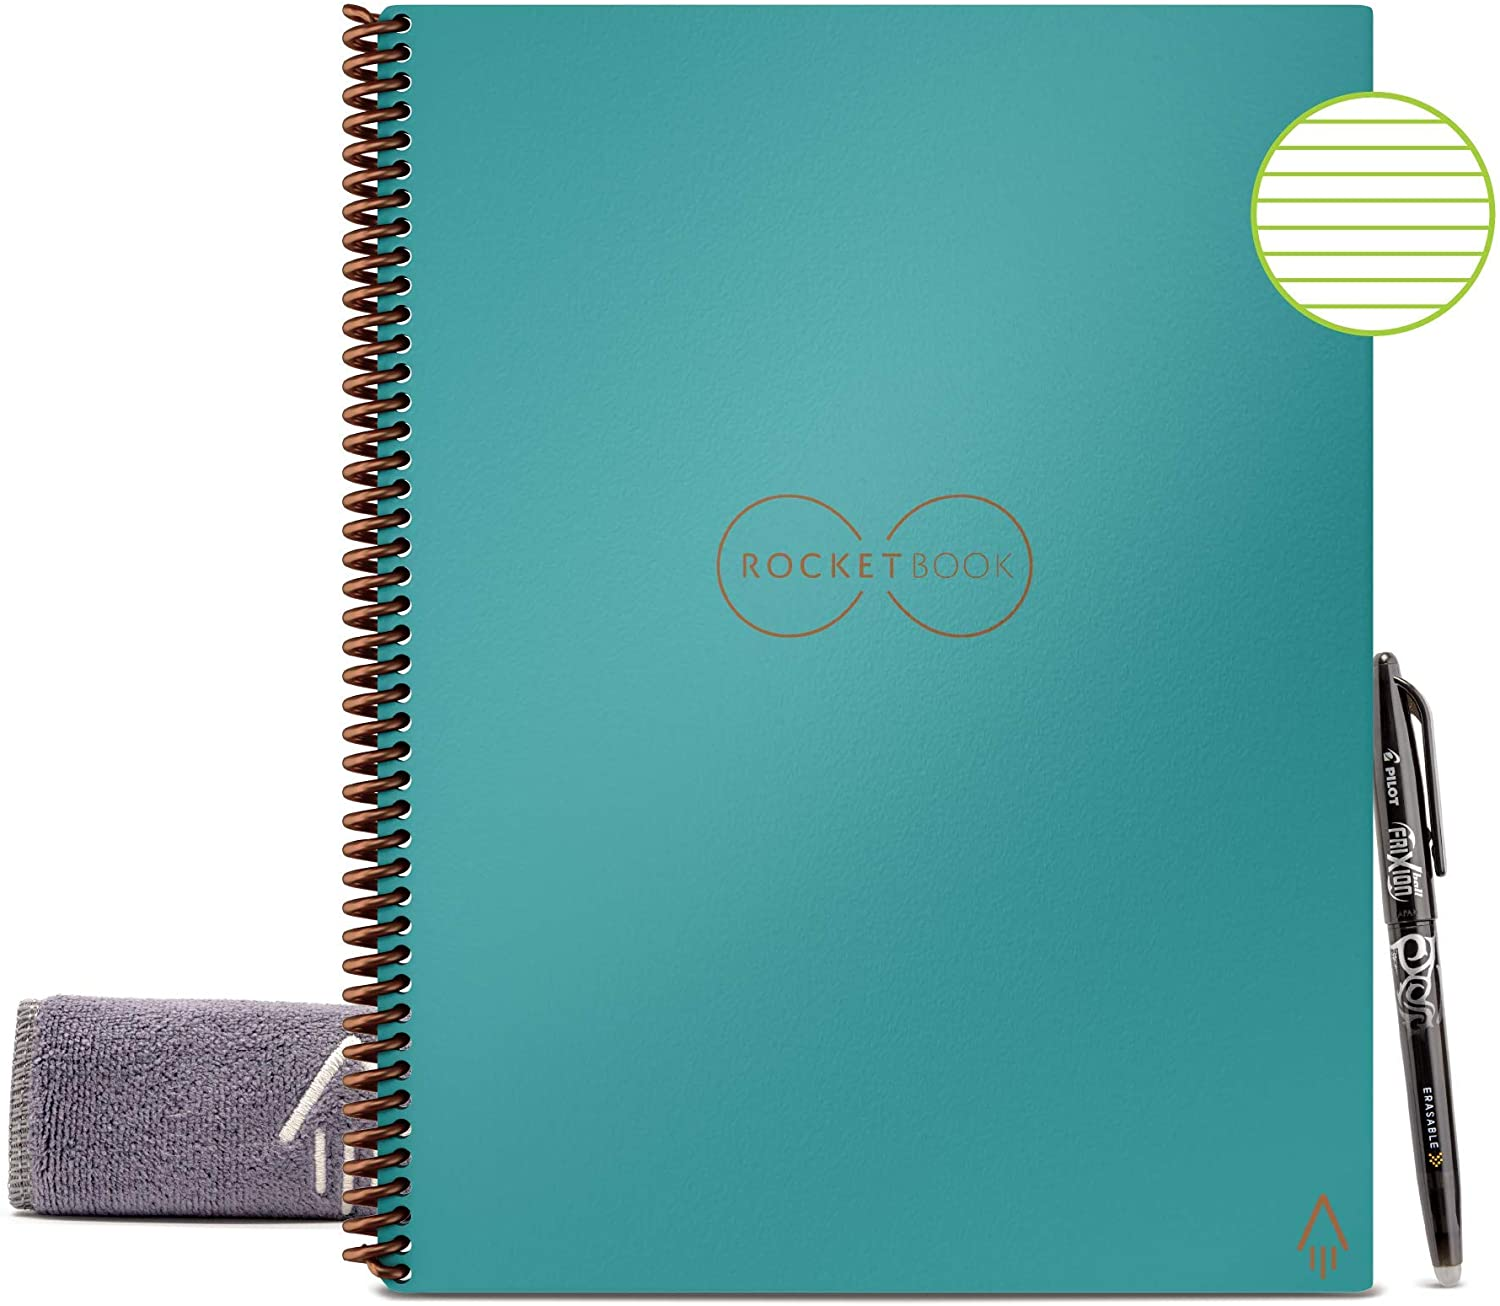 Subscription Smart Notebook 16